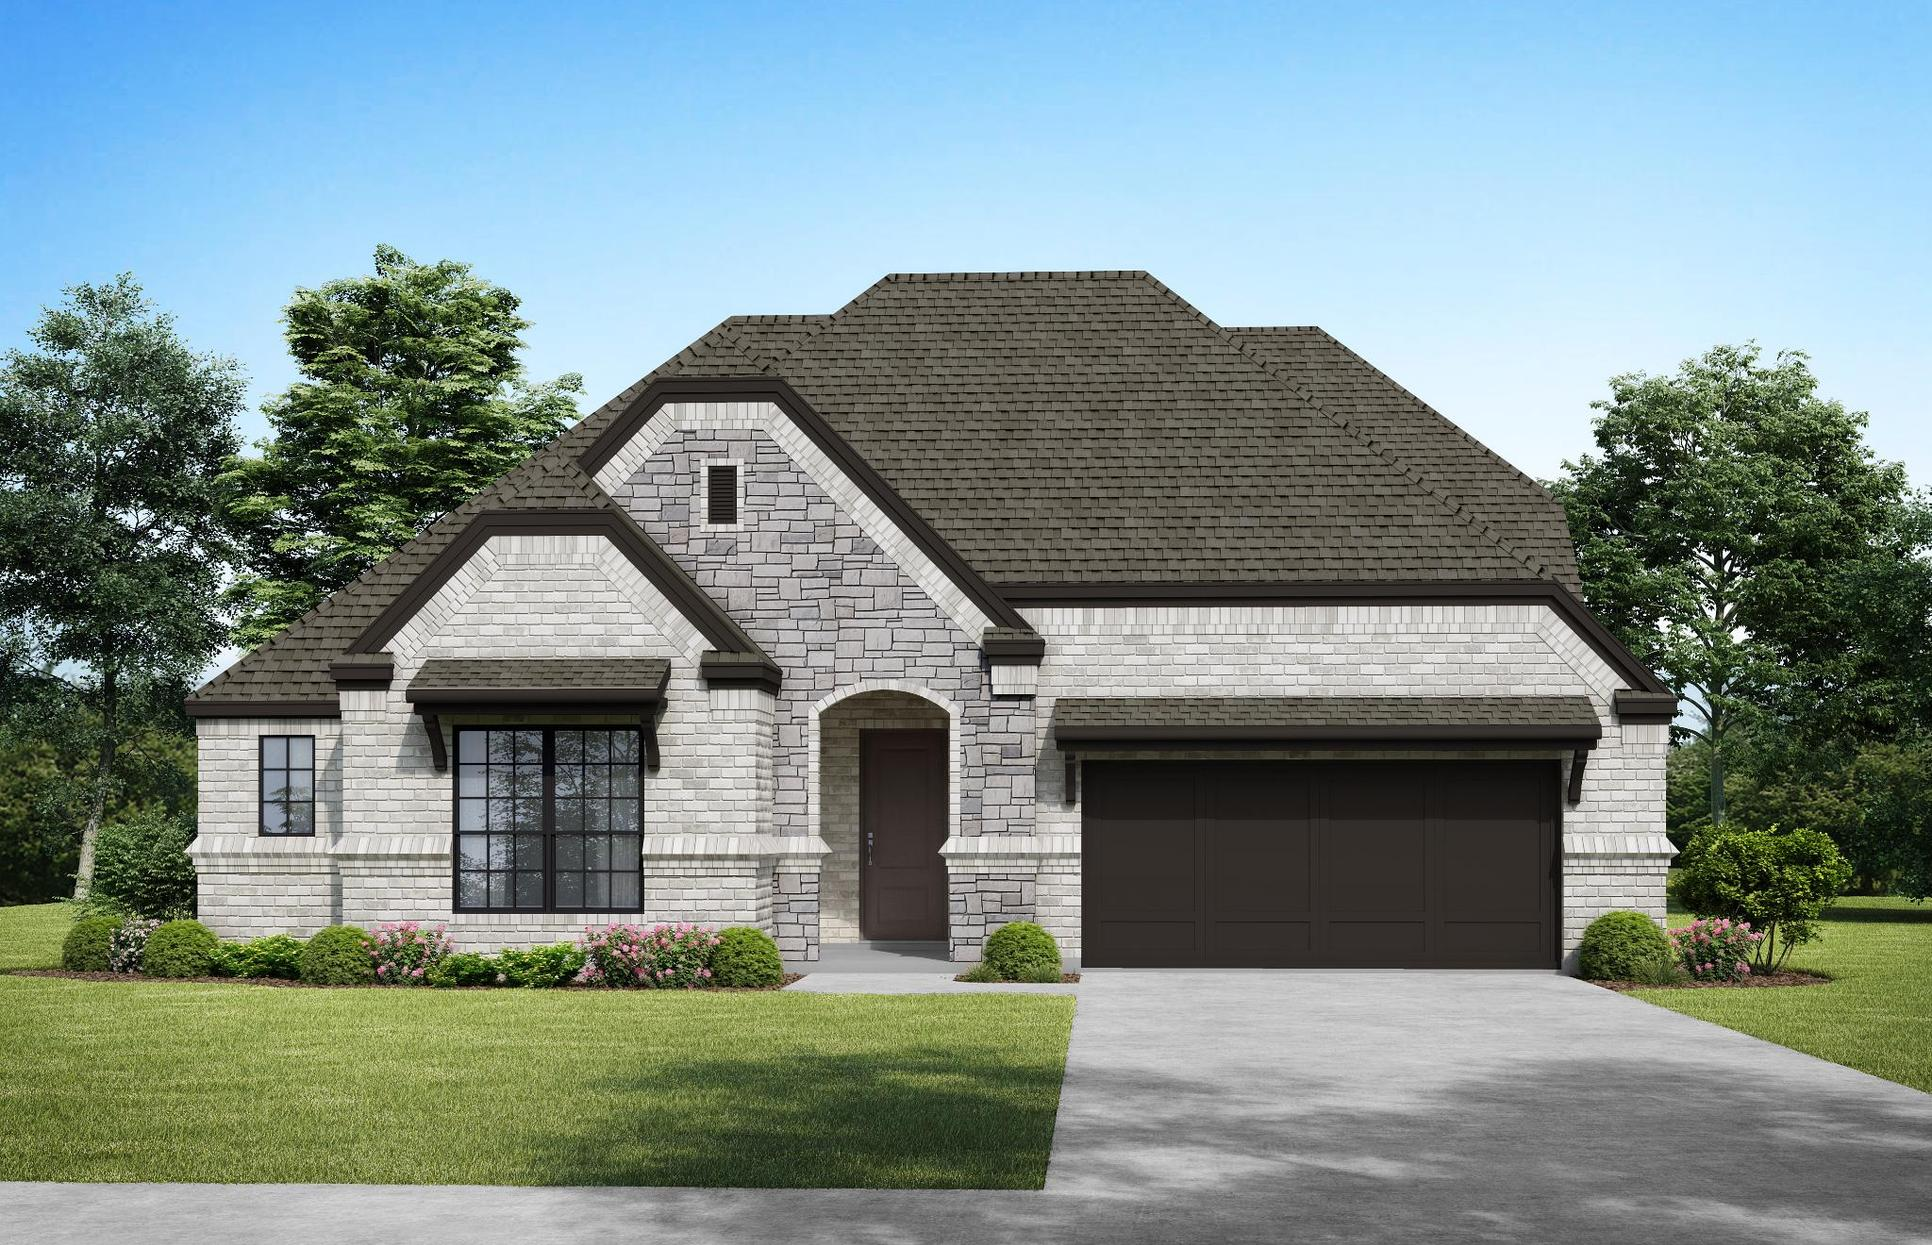 Bellvue Elevation A. Images are artist renderings and will differ from the actual home built.:Bellvue Elevation A